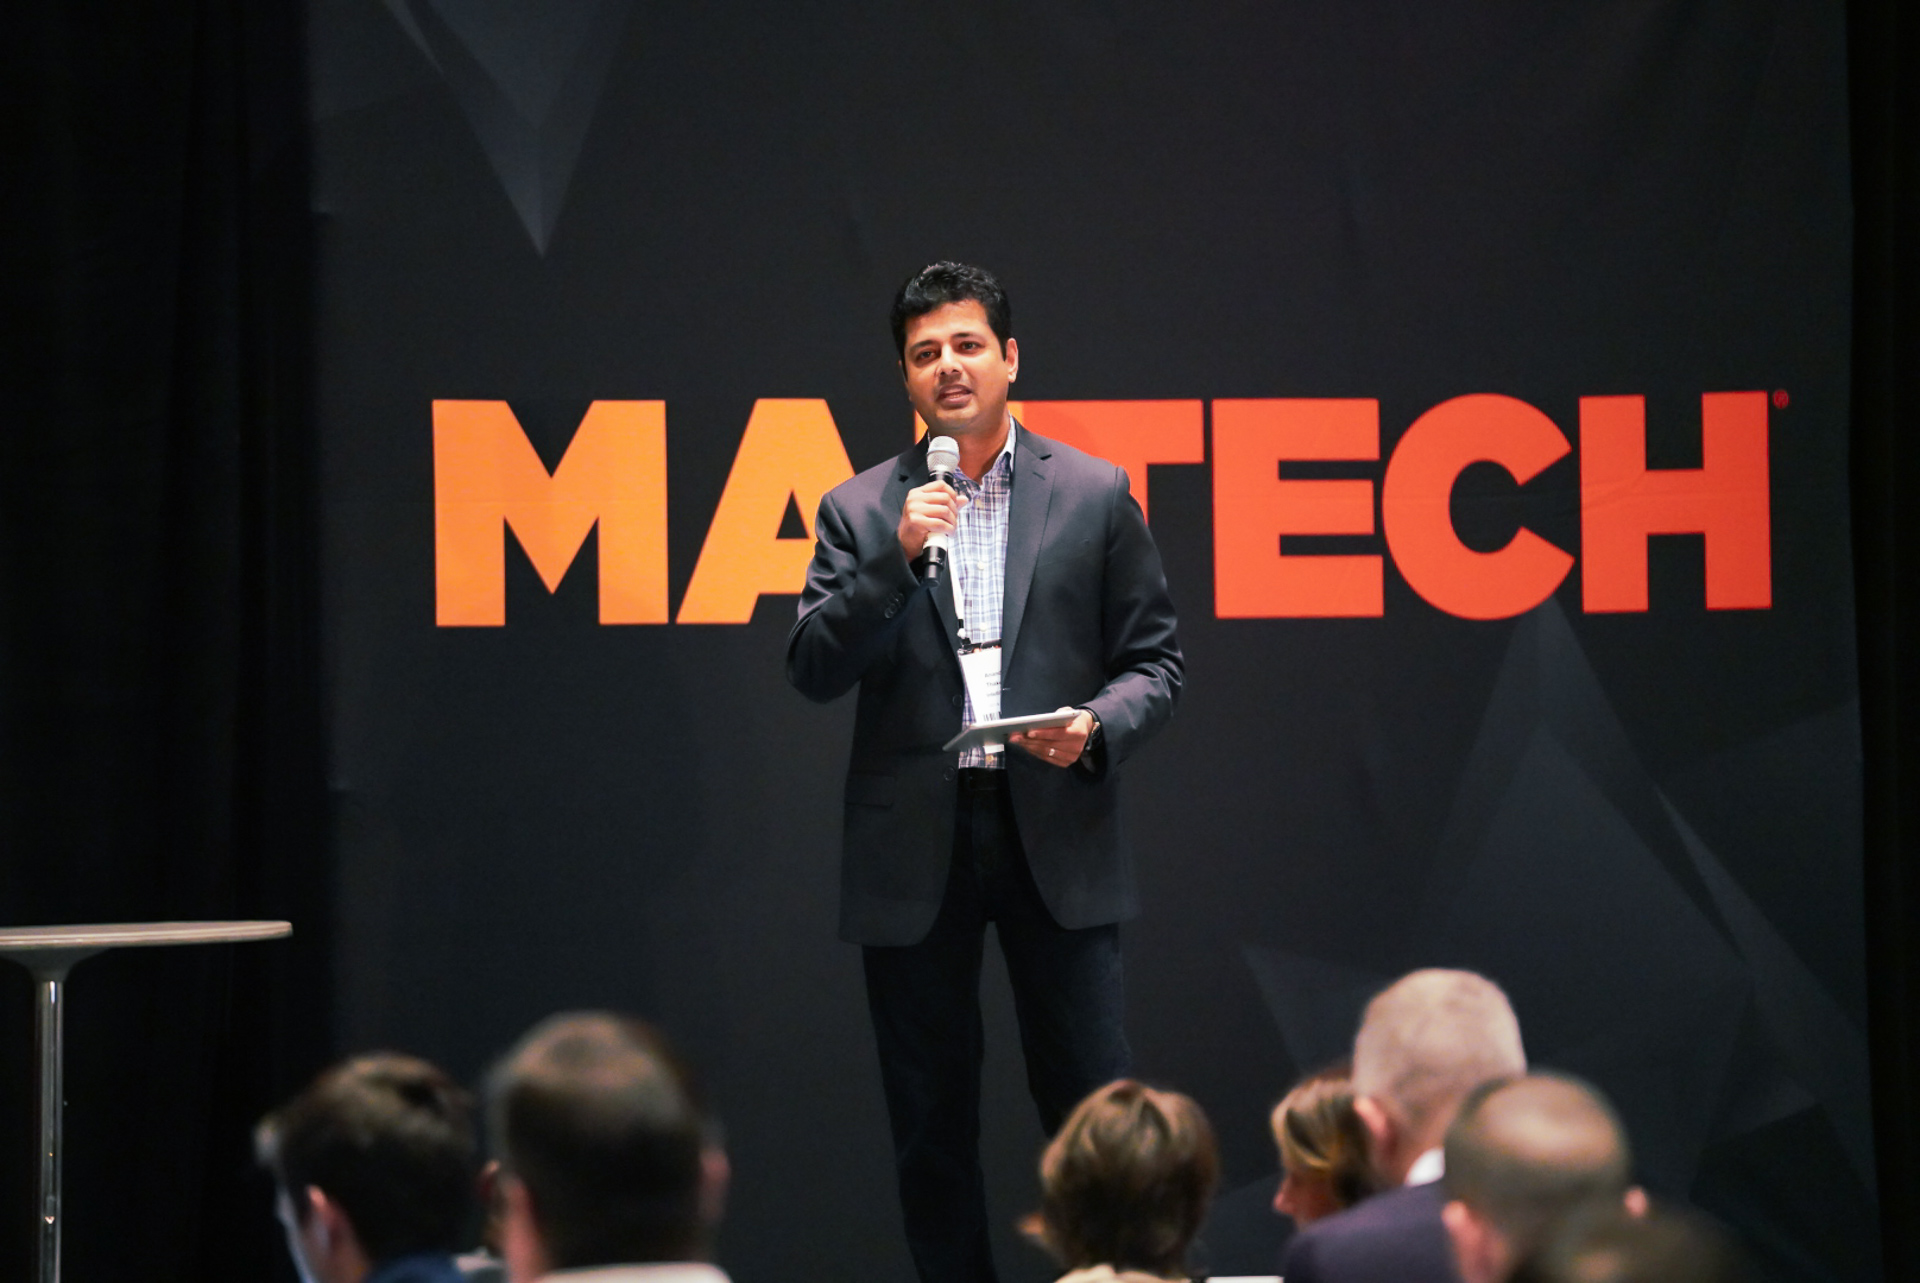 Anand Thaker Speaking at Martech Conference